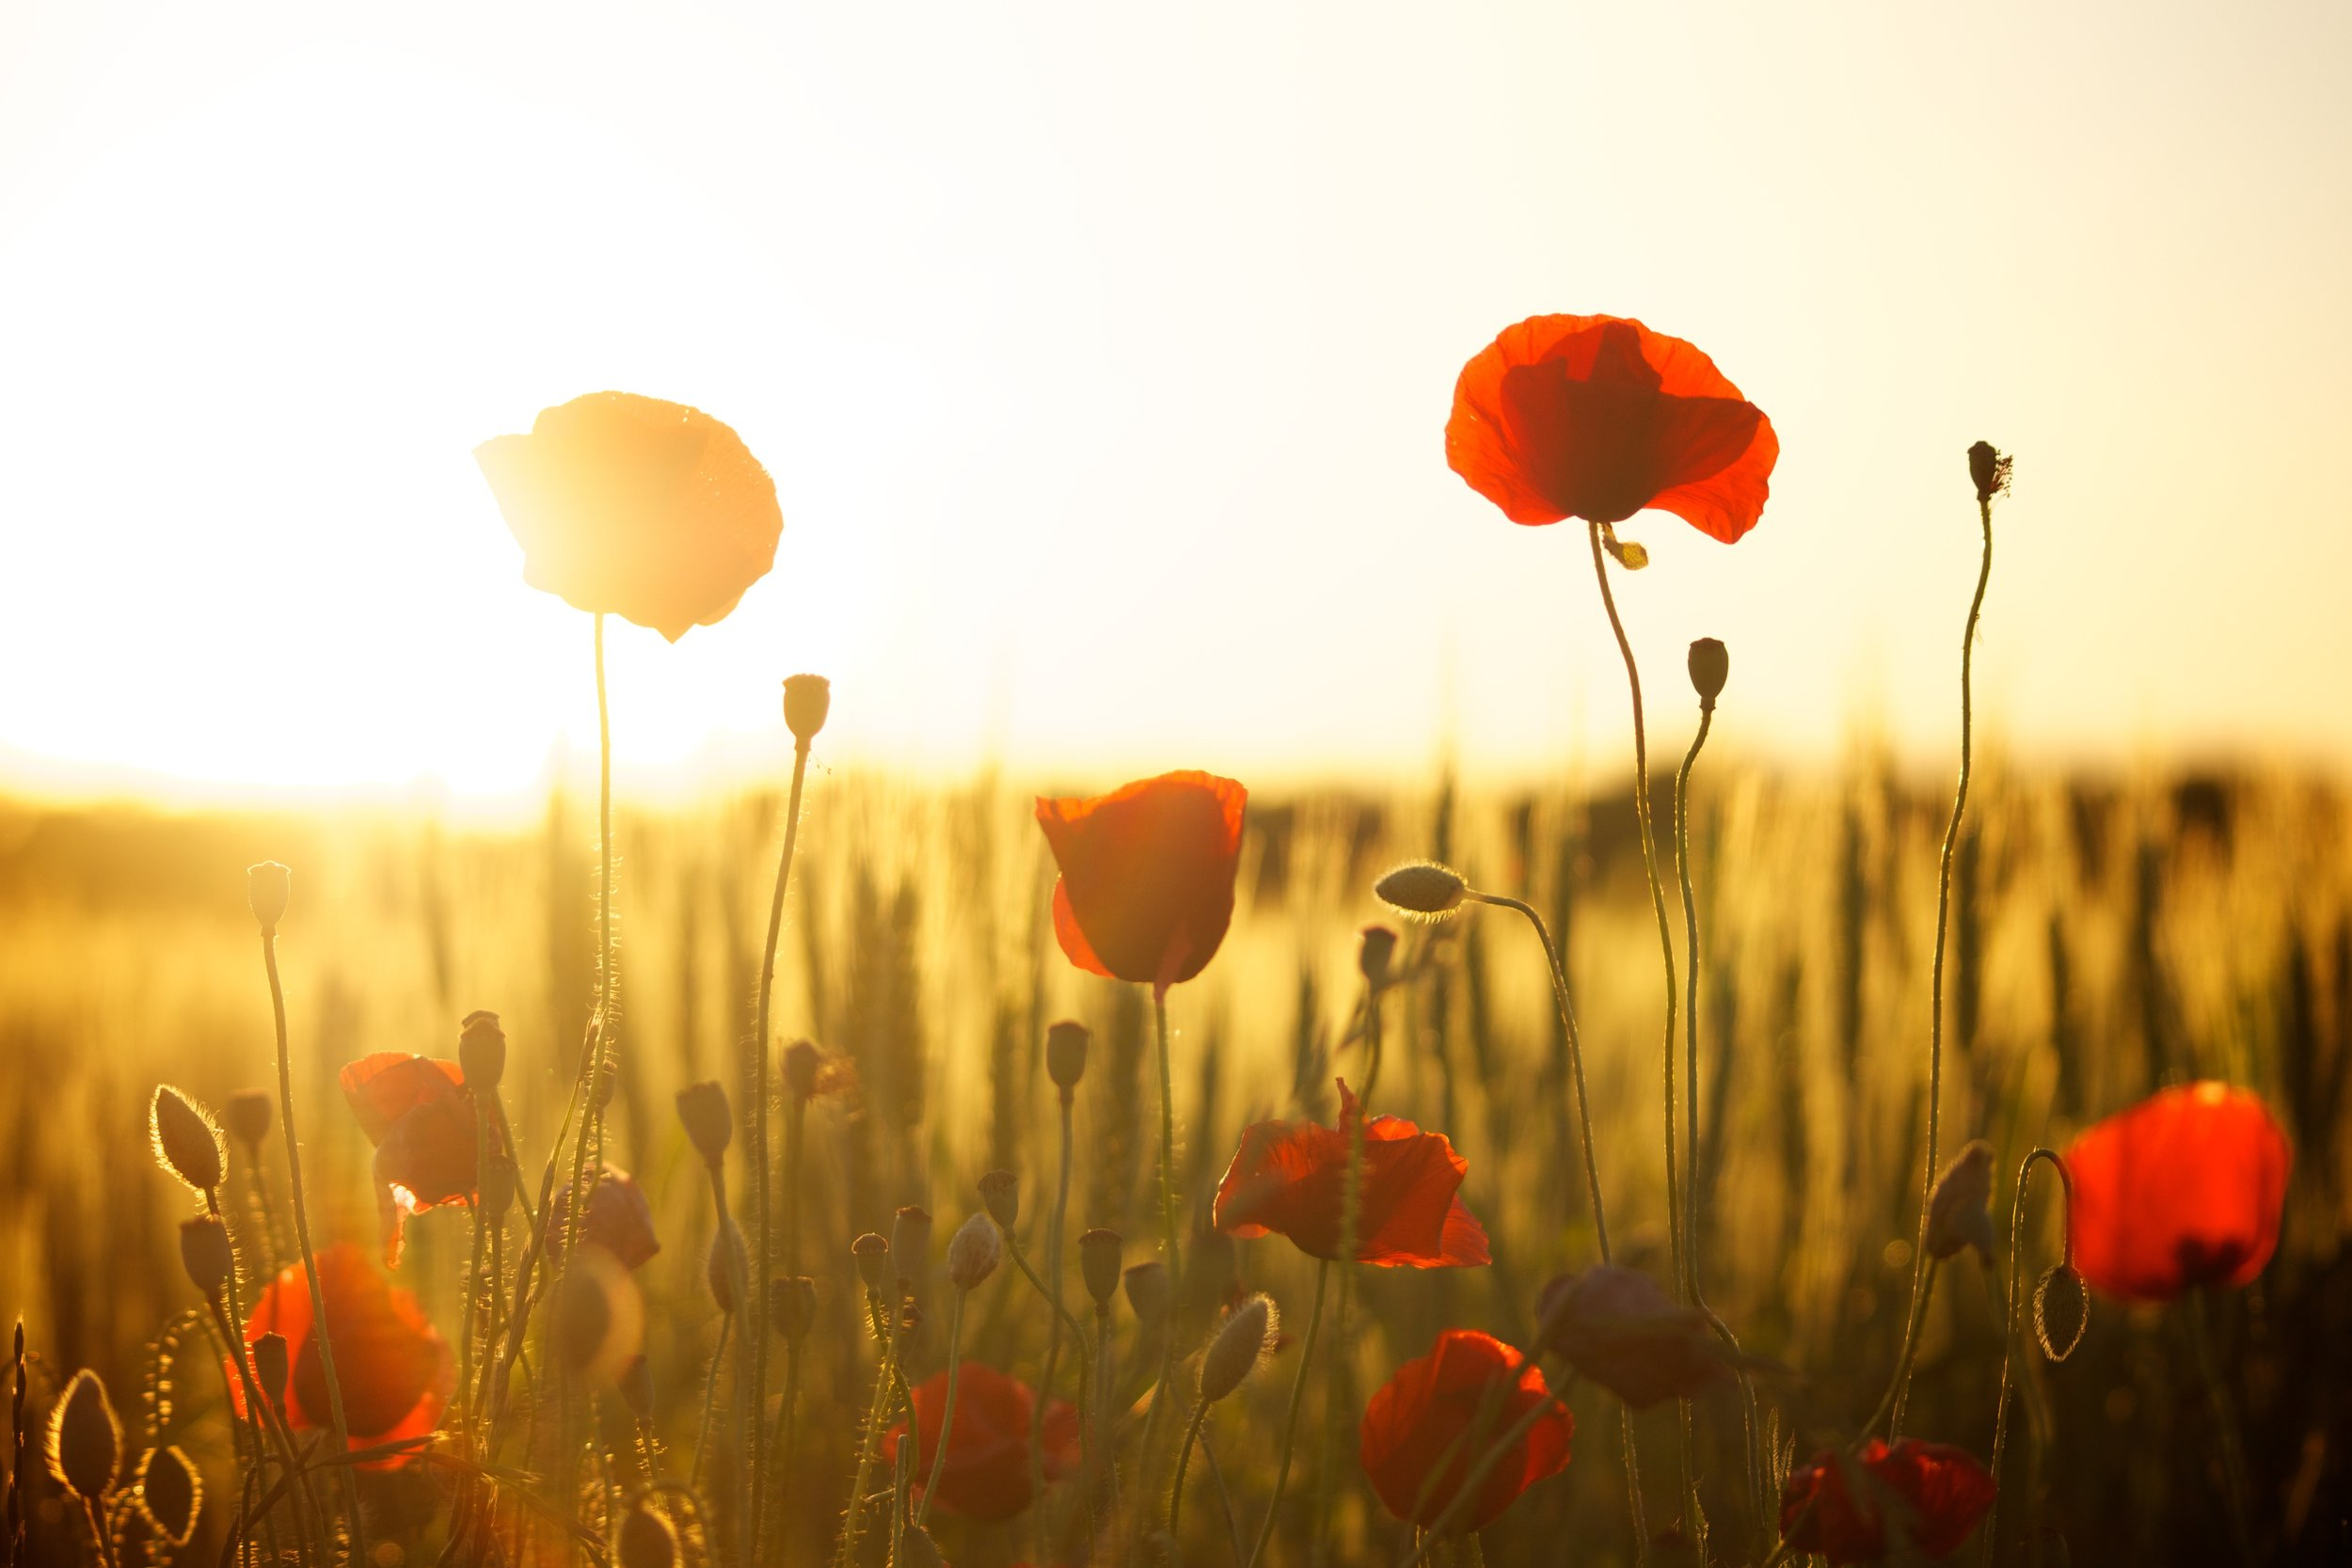 Field of poppies in sunset